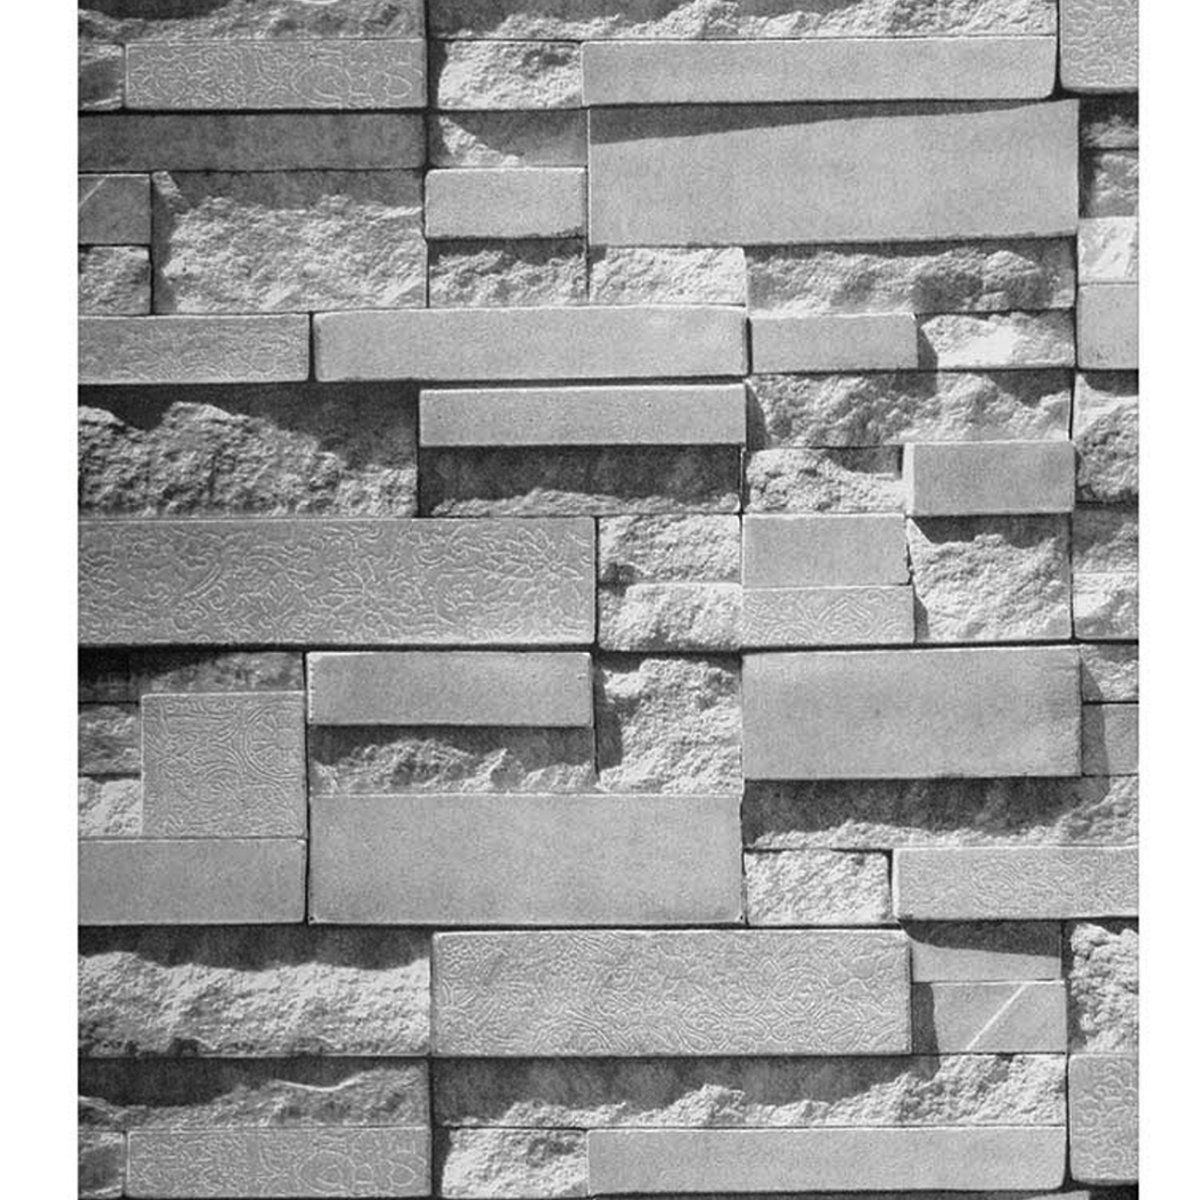 57sq Ft 393 7 X 21 3d Effect Brick Stone Wallpaper Roll Textured Removable Waterproof For Home Design And Room Decoration Super Large Size Walmart Com In 2020 Stone Wallpaper Brick Wallpaper Brick And